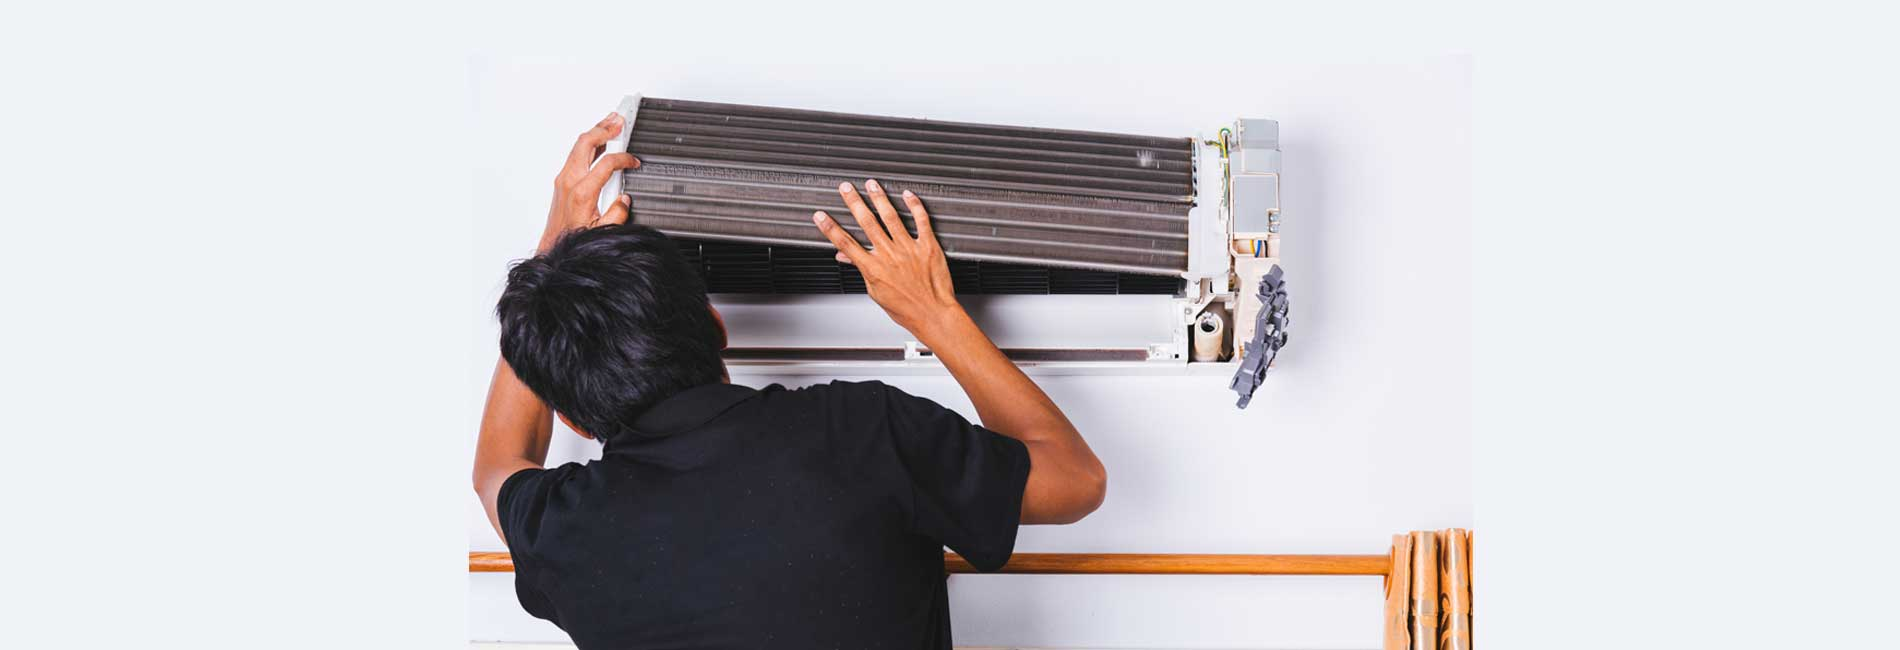 Bluestar AC Uninstallation in Anna Nagar West Extension